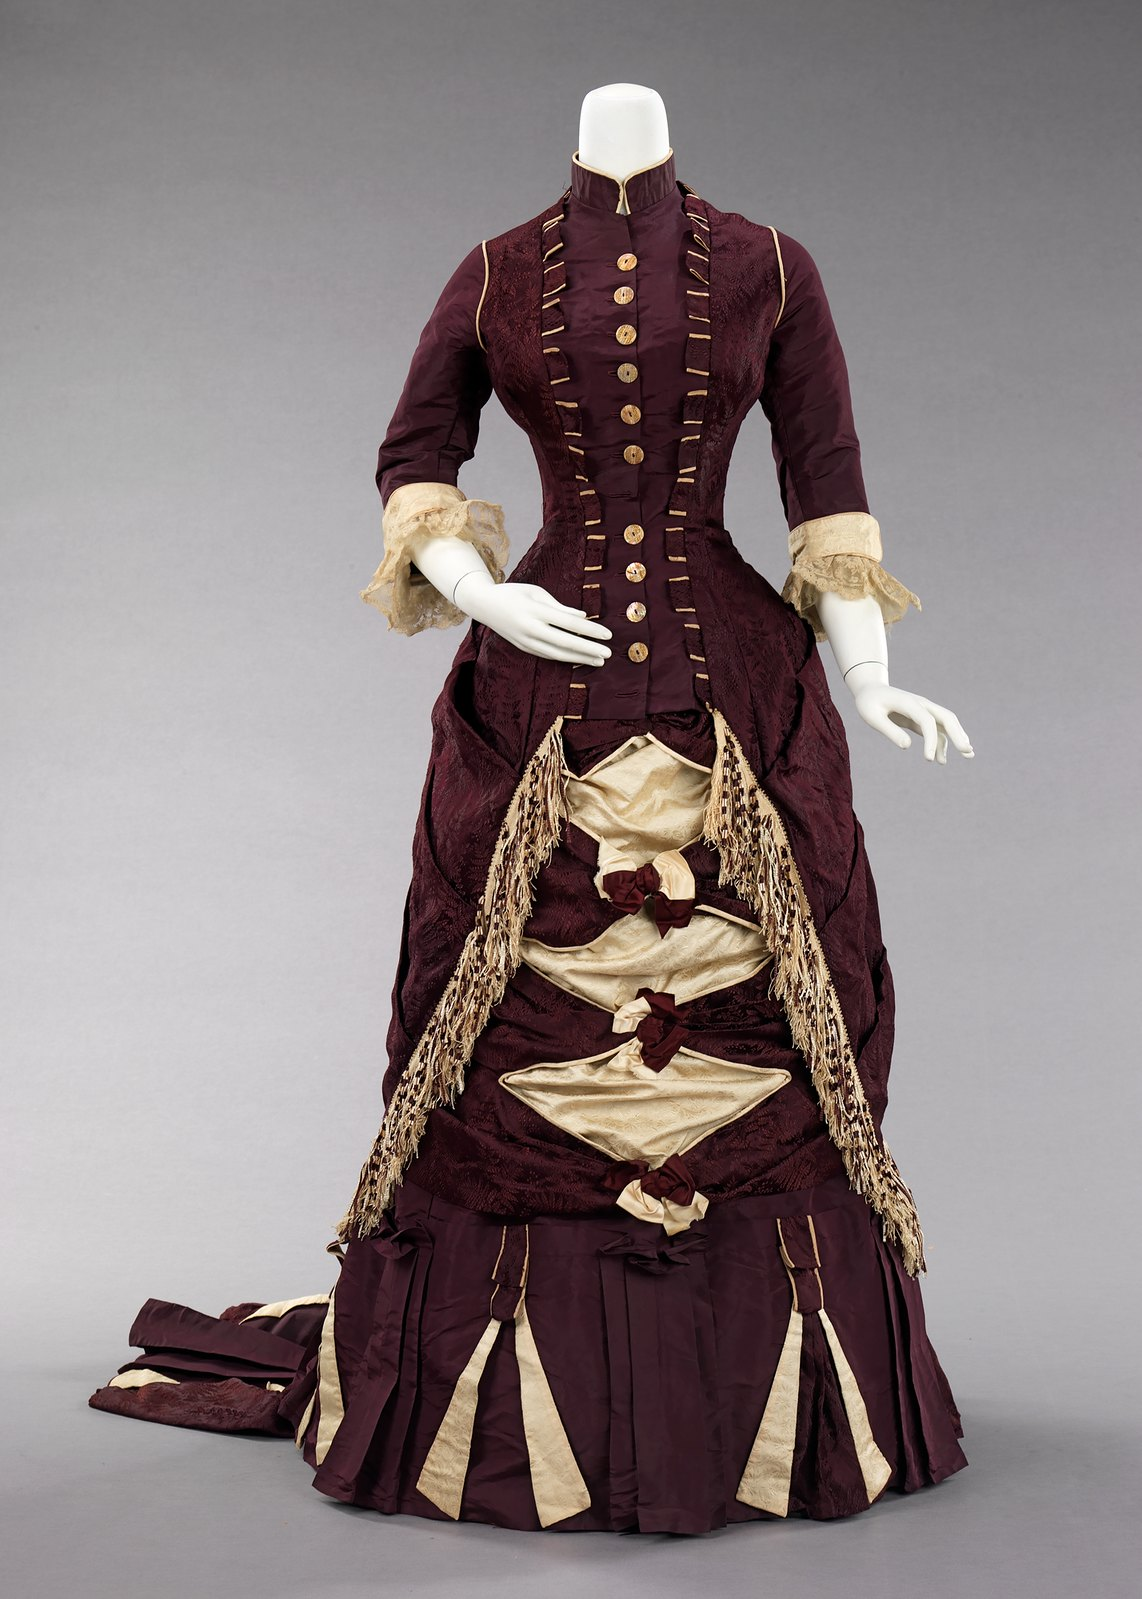 c. 1880. American. Silk, cotton. metmuseum_front